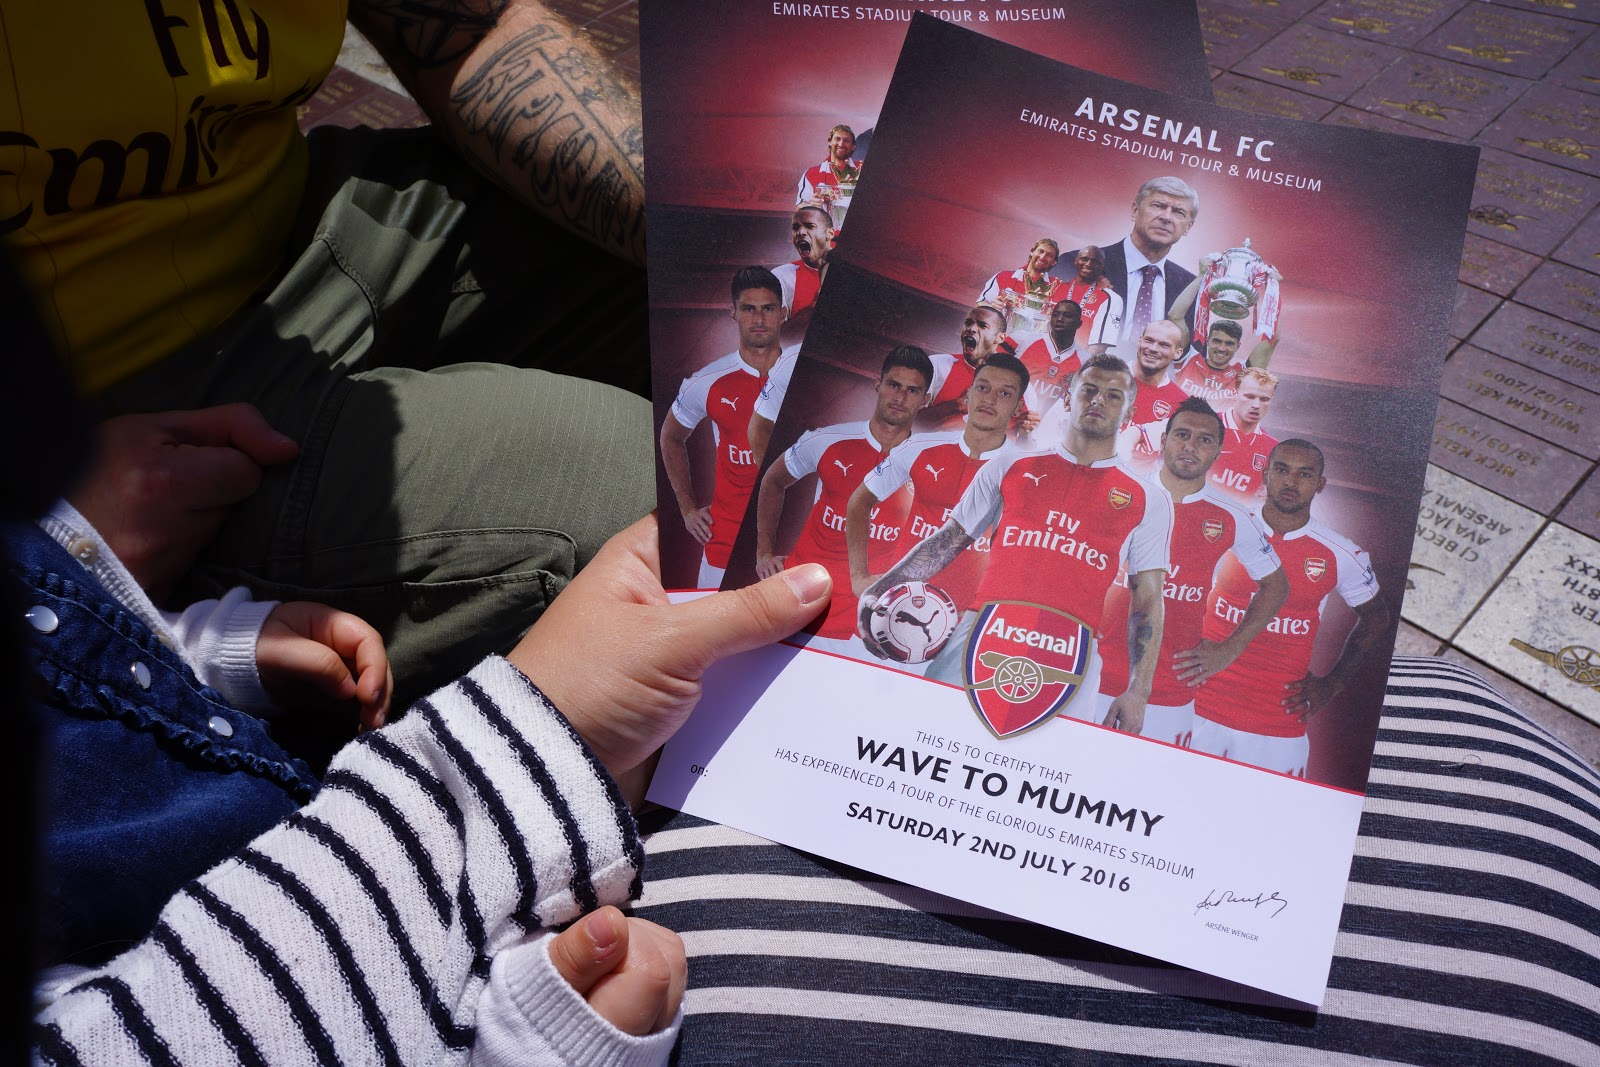 Arsenal Stadium Tour certificate for Wave to Mummy